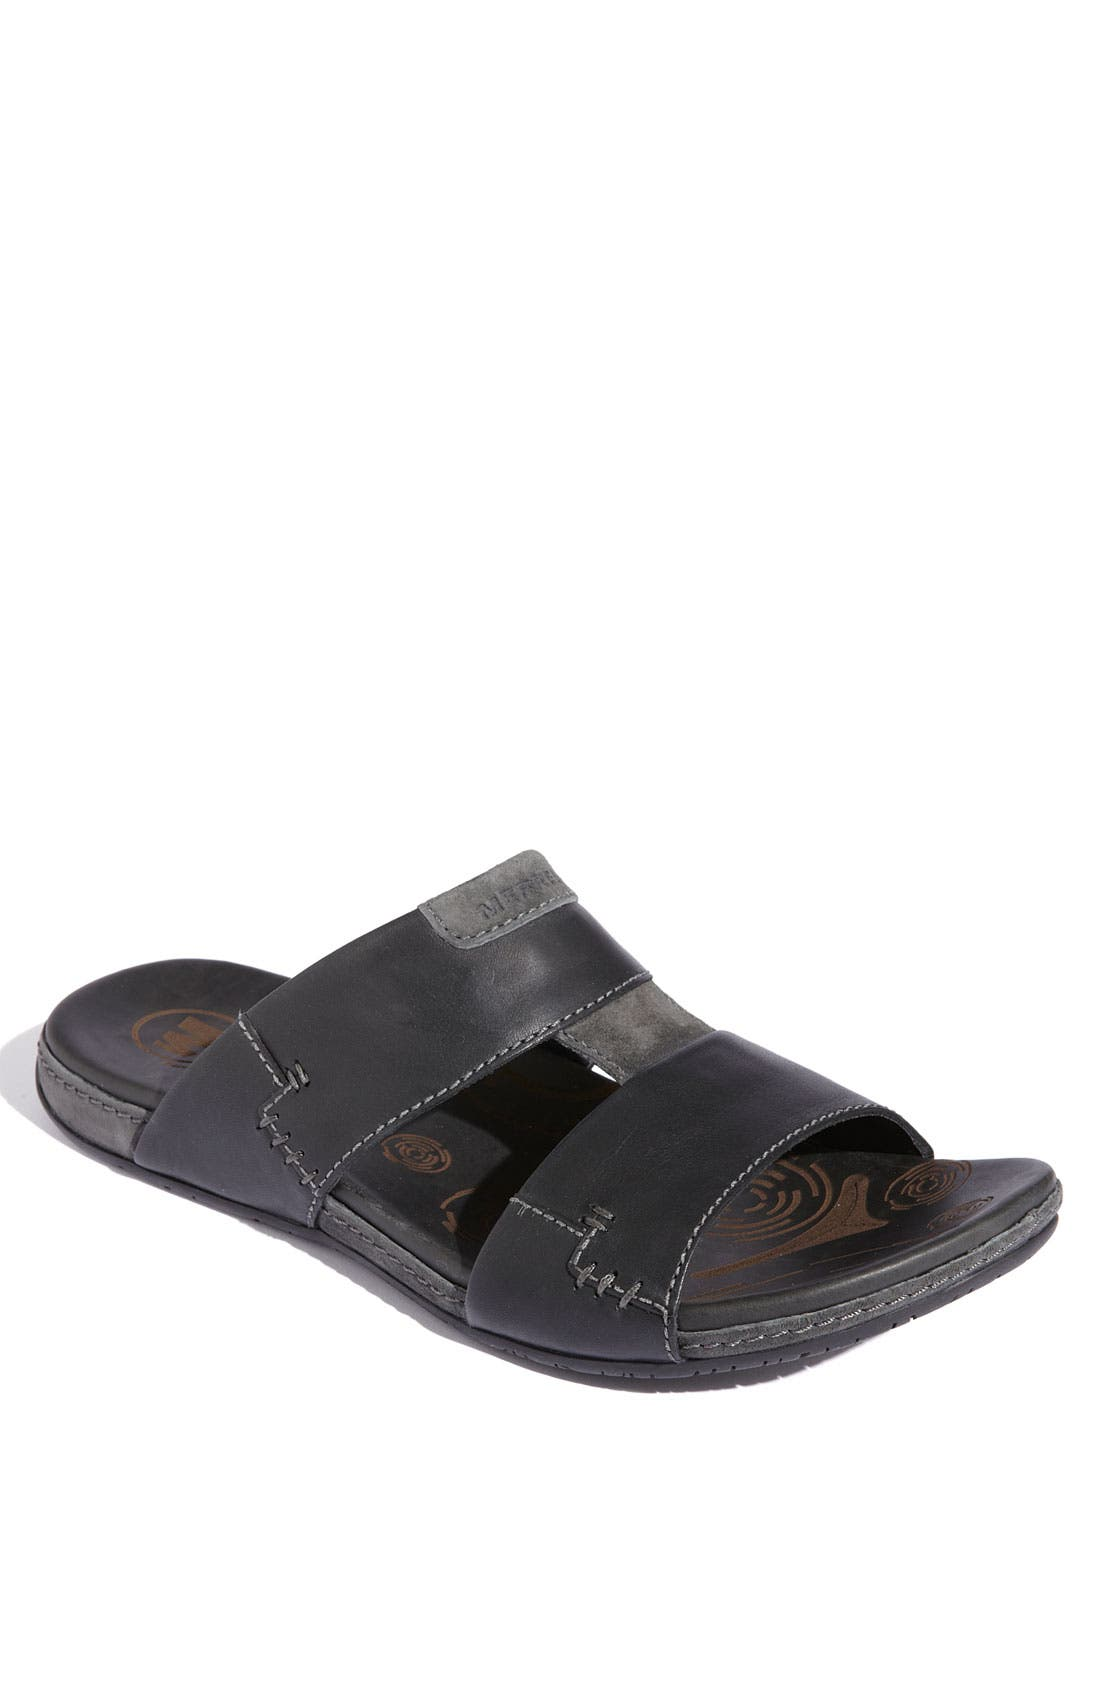 Alternate Image 1 Selected - Merrell 'Lancet' Sandal